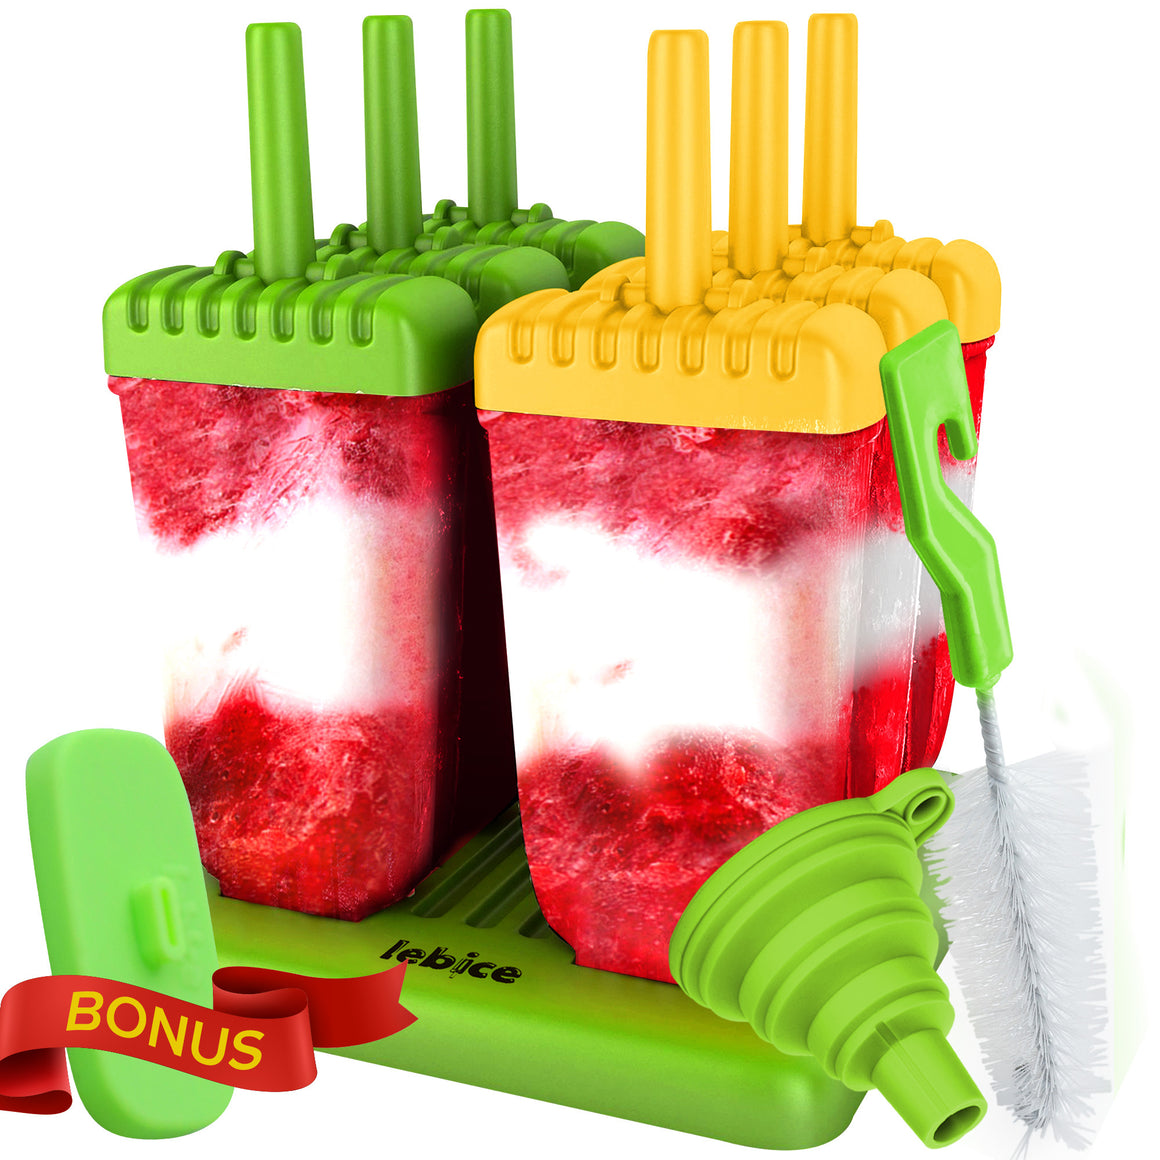 LEBICE Popsicle molds set (Green Yellow)